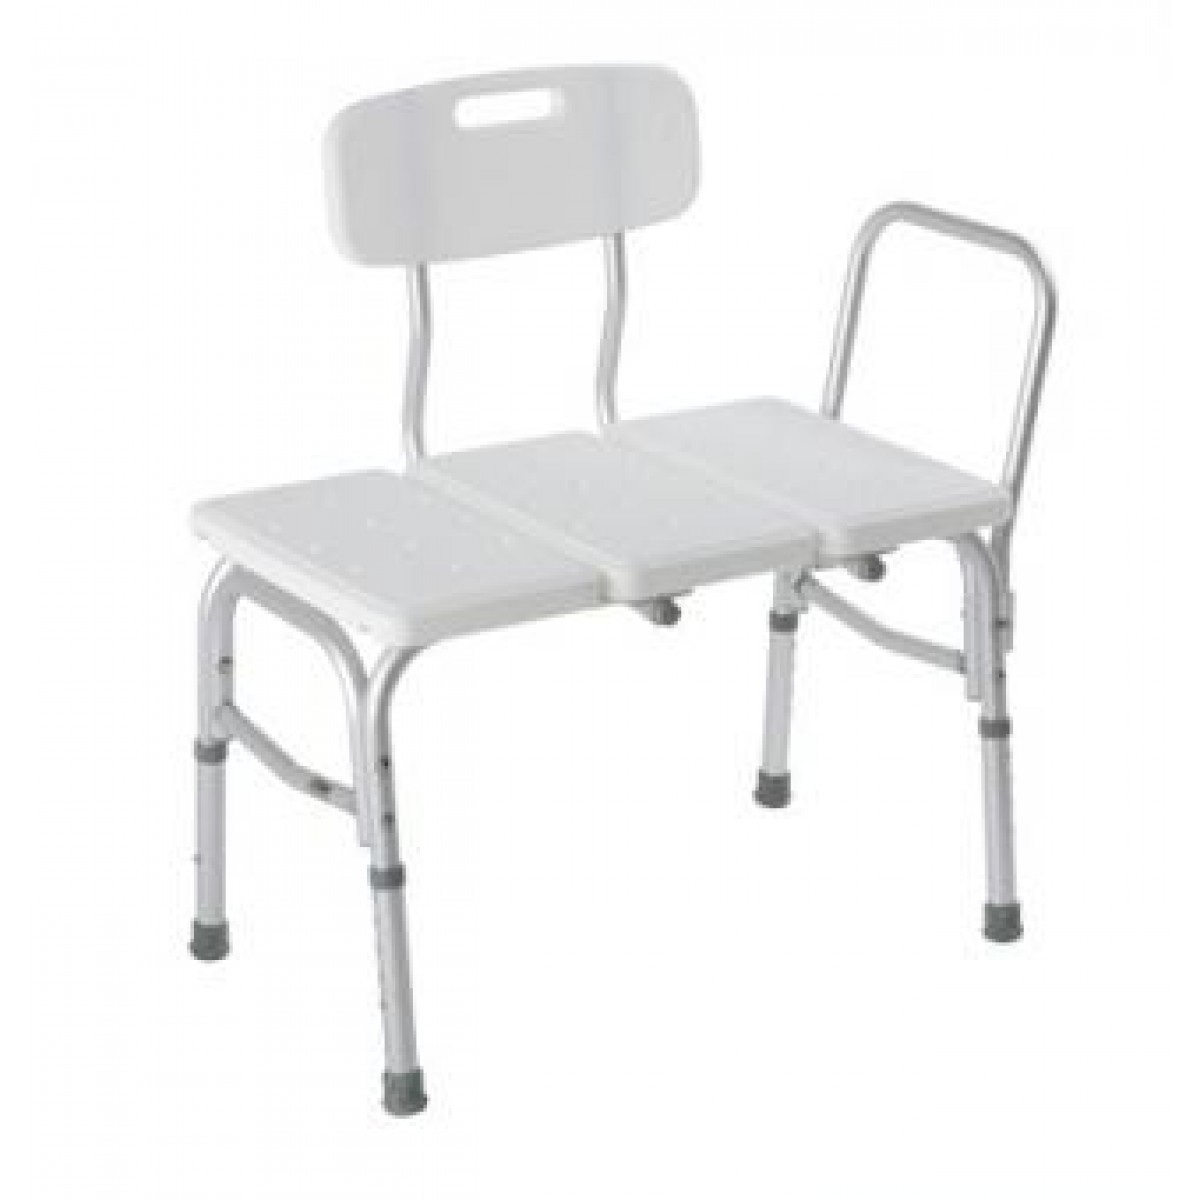 Carex Bathtub Transfer Bench Durable Plastic On Sale With Unbeatable Prices